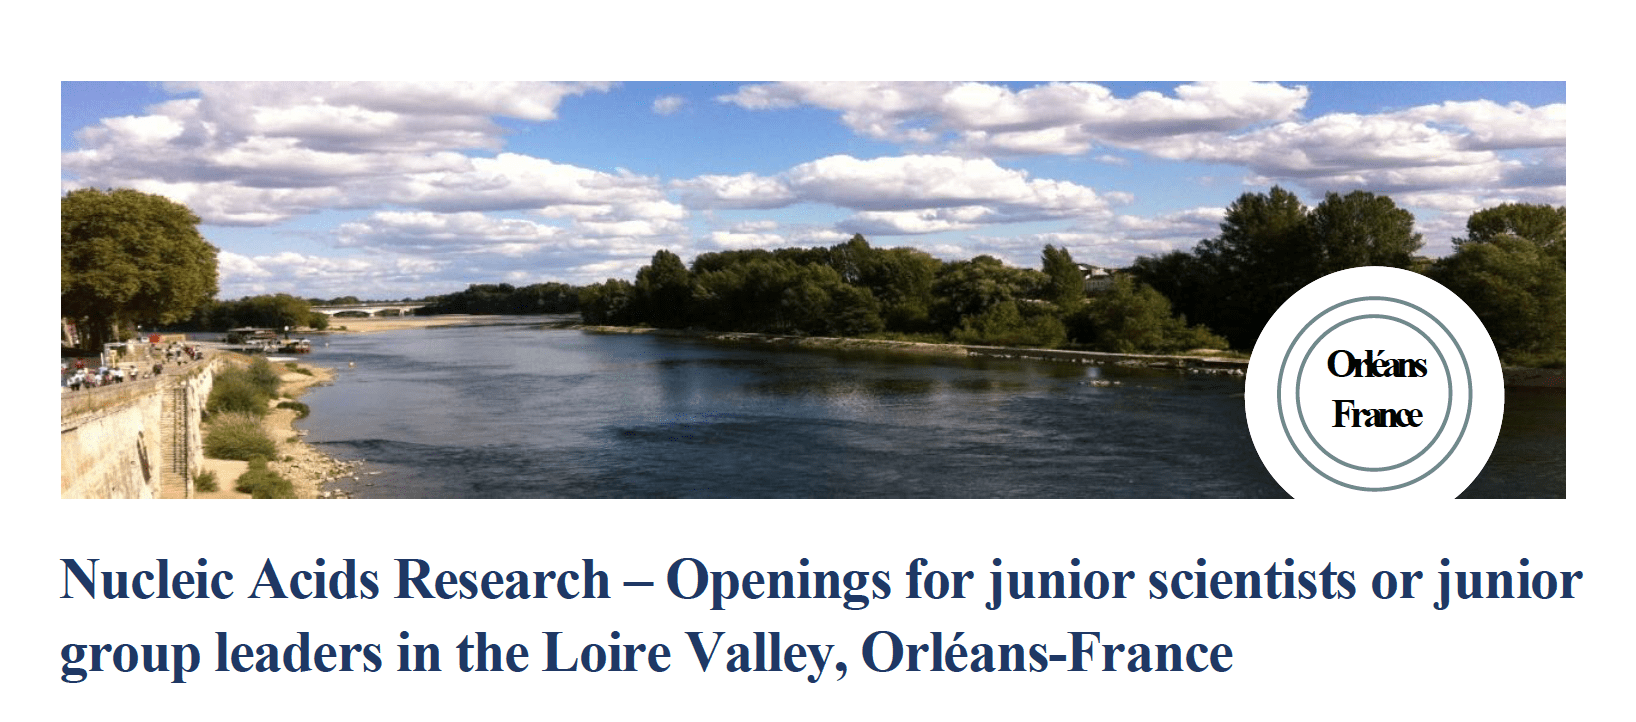 Nucleic Acids Research – Openings for junior scientists or junior group leaders at CNRS in France